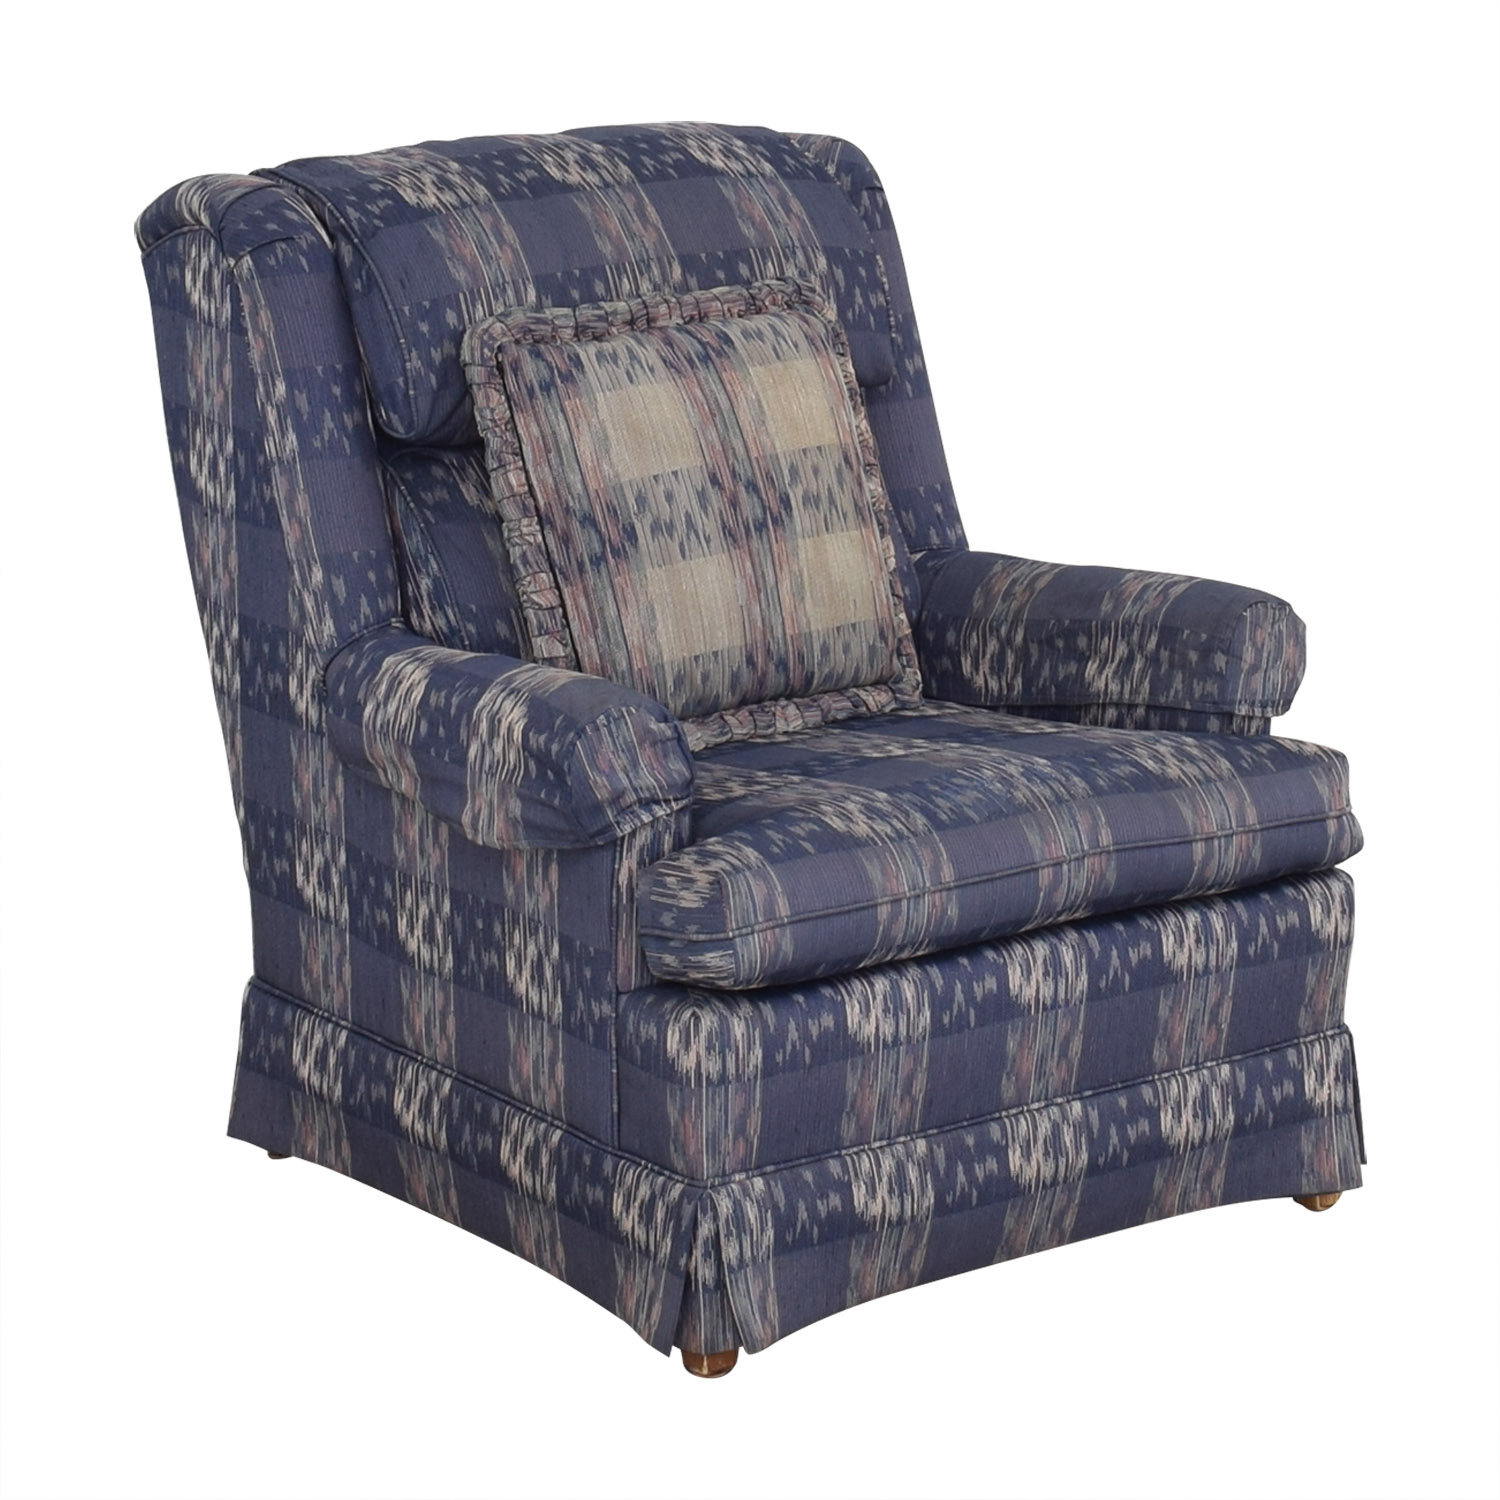 Ethan Allen Accent Club Chair / Chairs